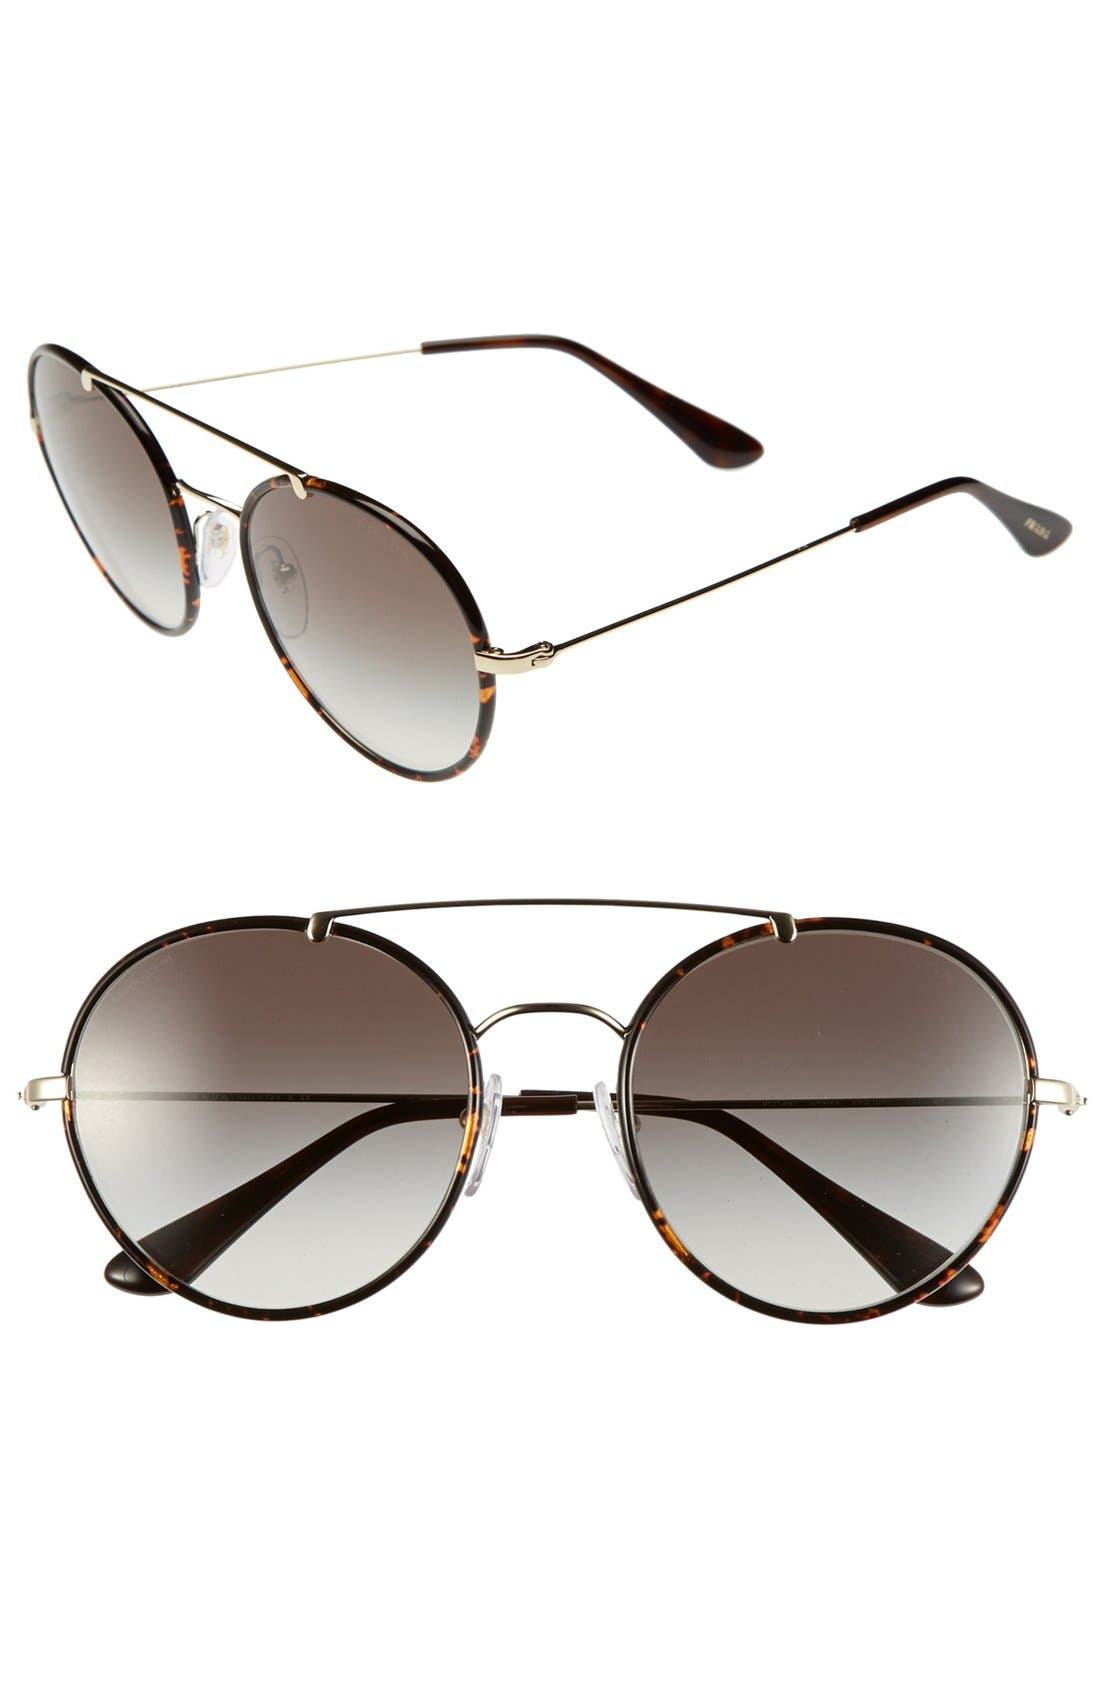 Alternate Image 1 Selected - Prada 54mm Retro Sunglasses